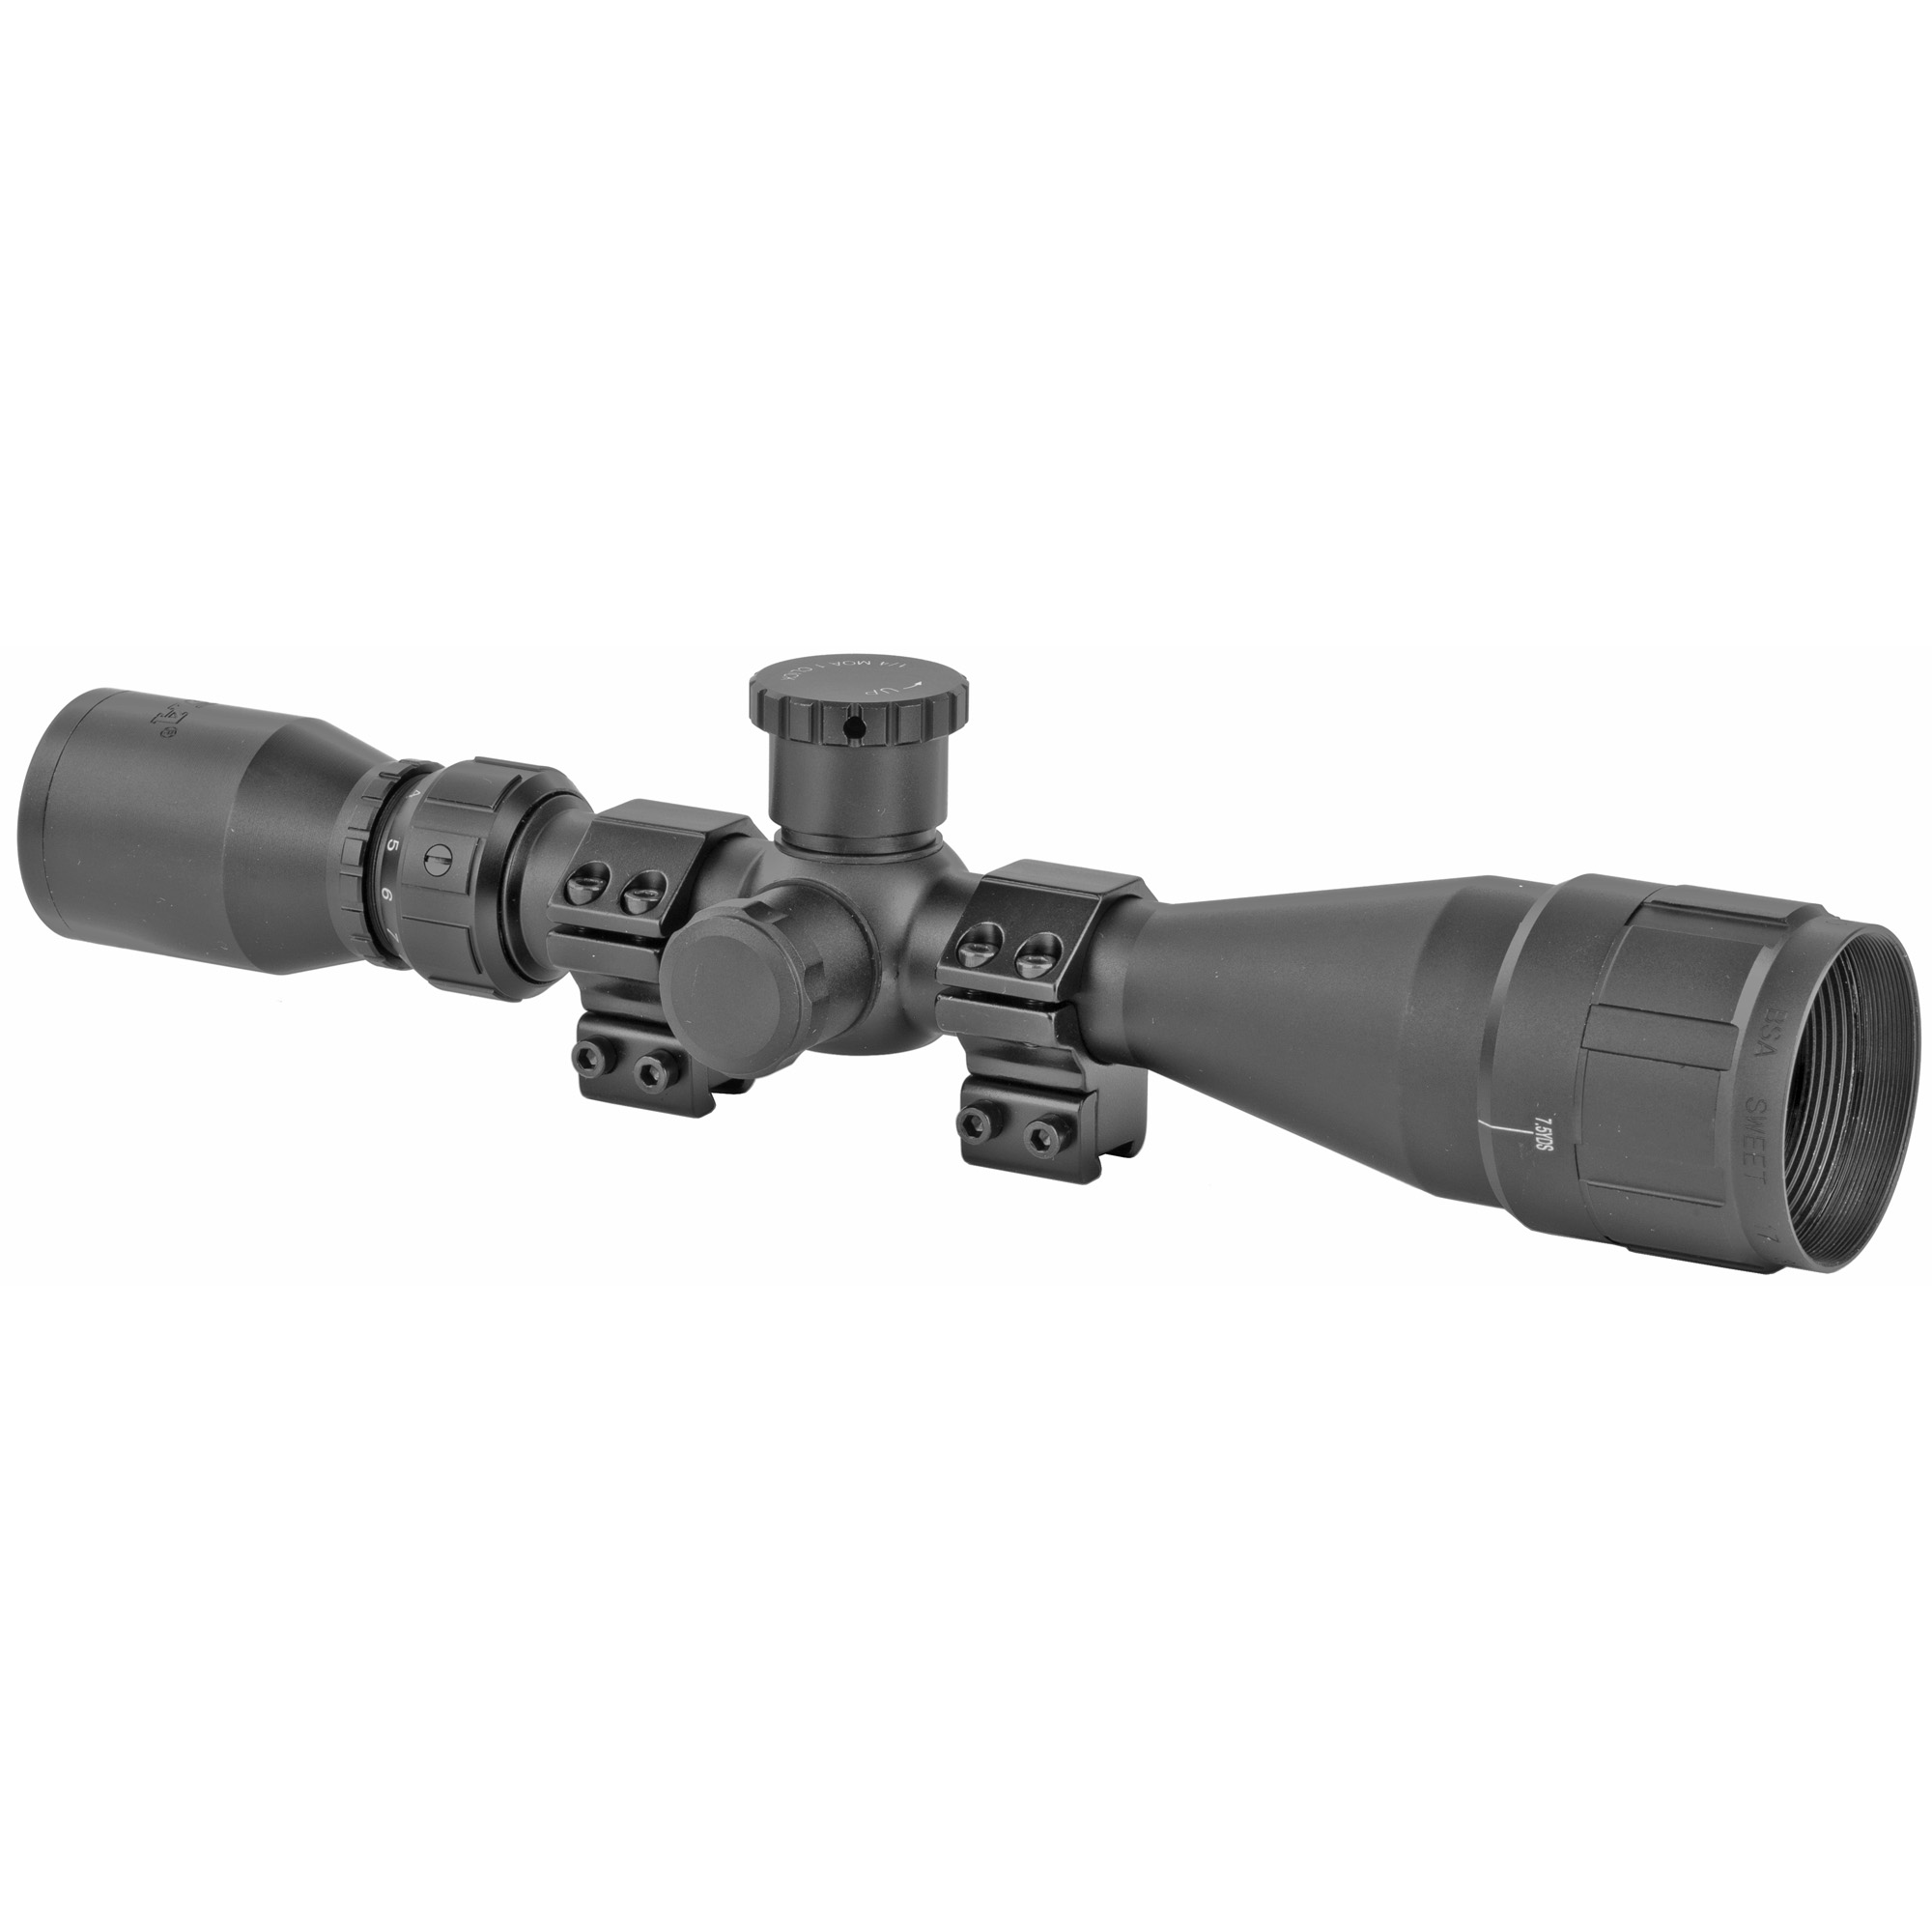 Bsa Sweet 17 3-9x40 30/30 Blk